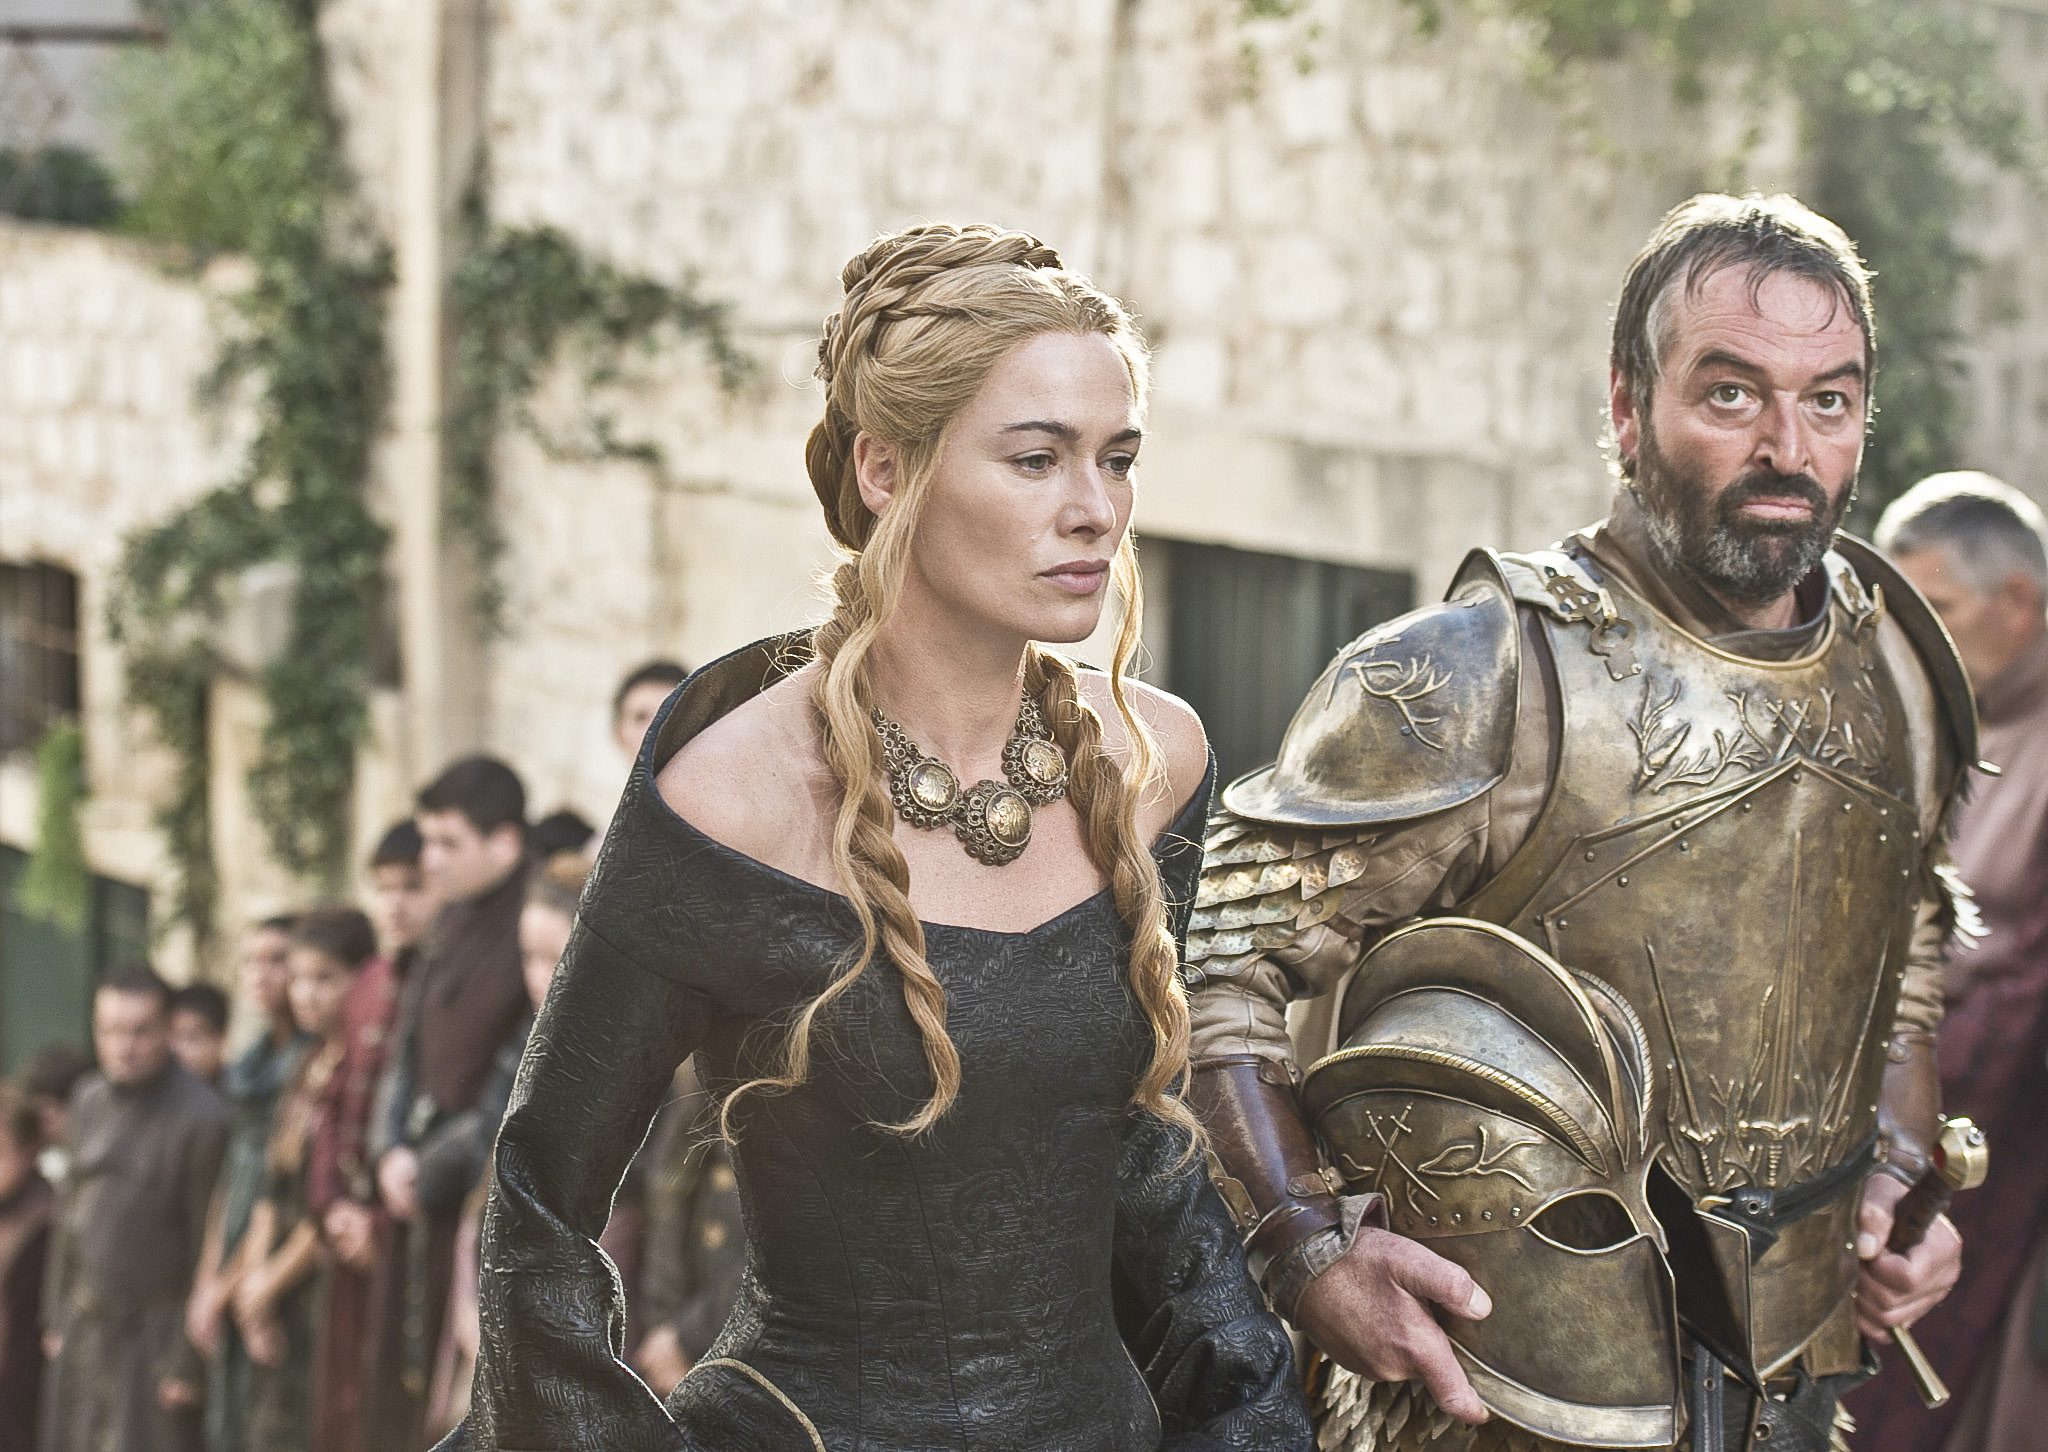 zap-game-of-thrones-season-5-photos-017.jpeg_edited